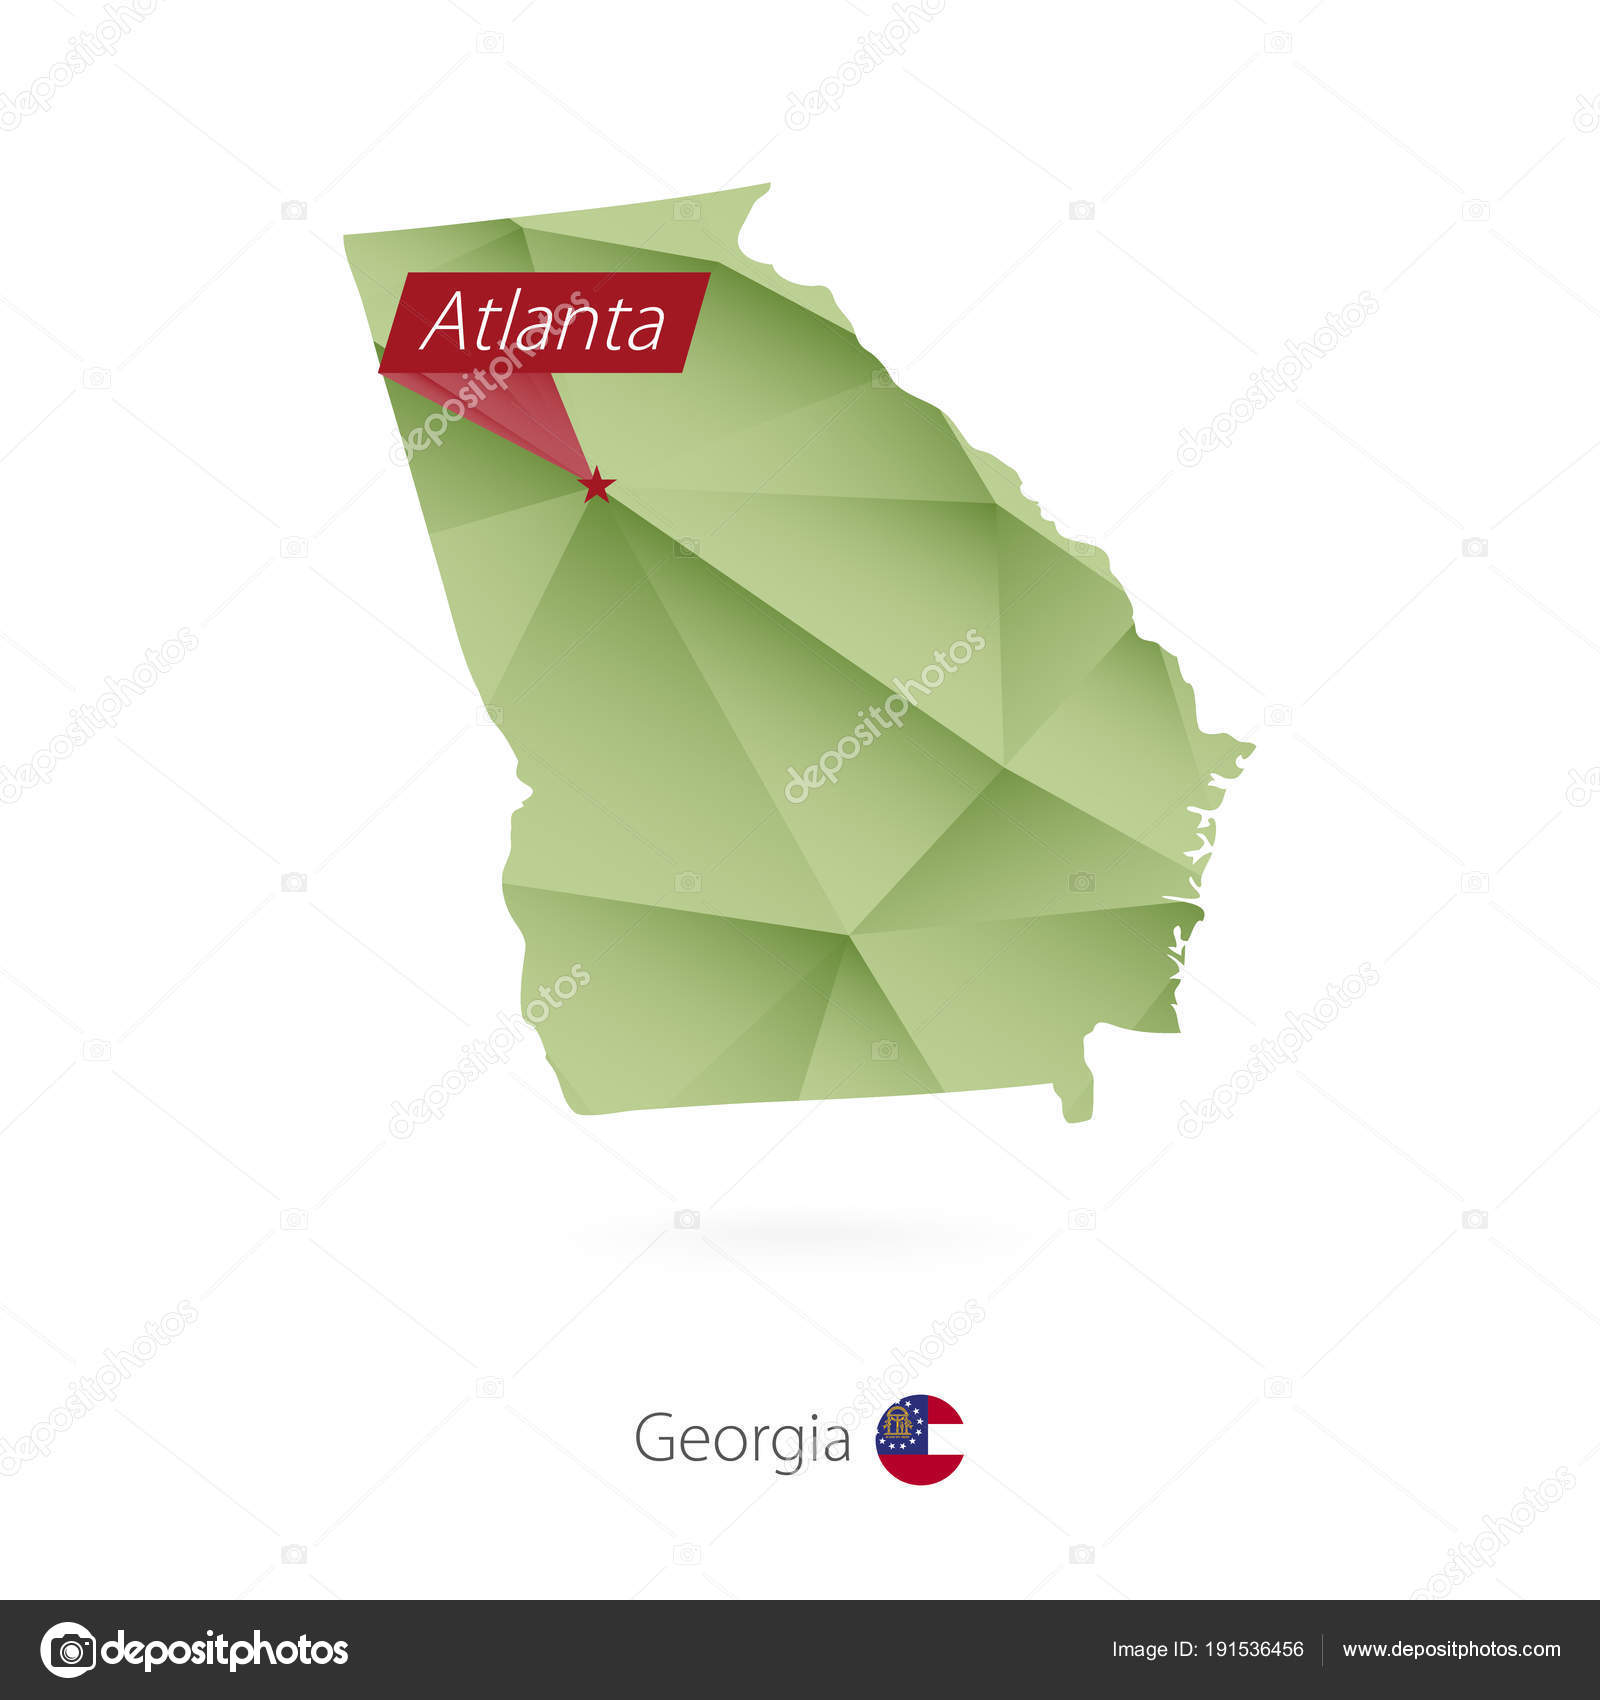 Map Of Georgia With Capital.Green Gradient Low Poly Map Of Georgia With Capital Atlanta Stock